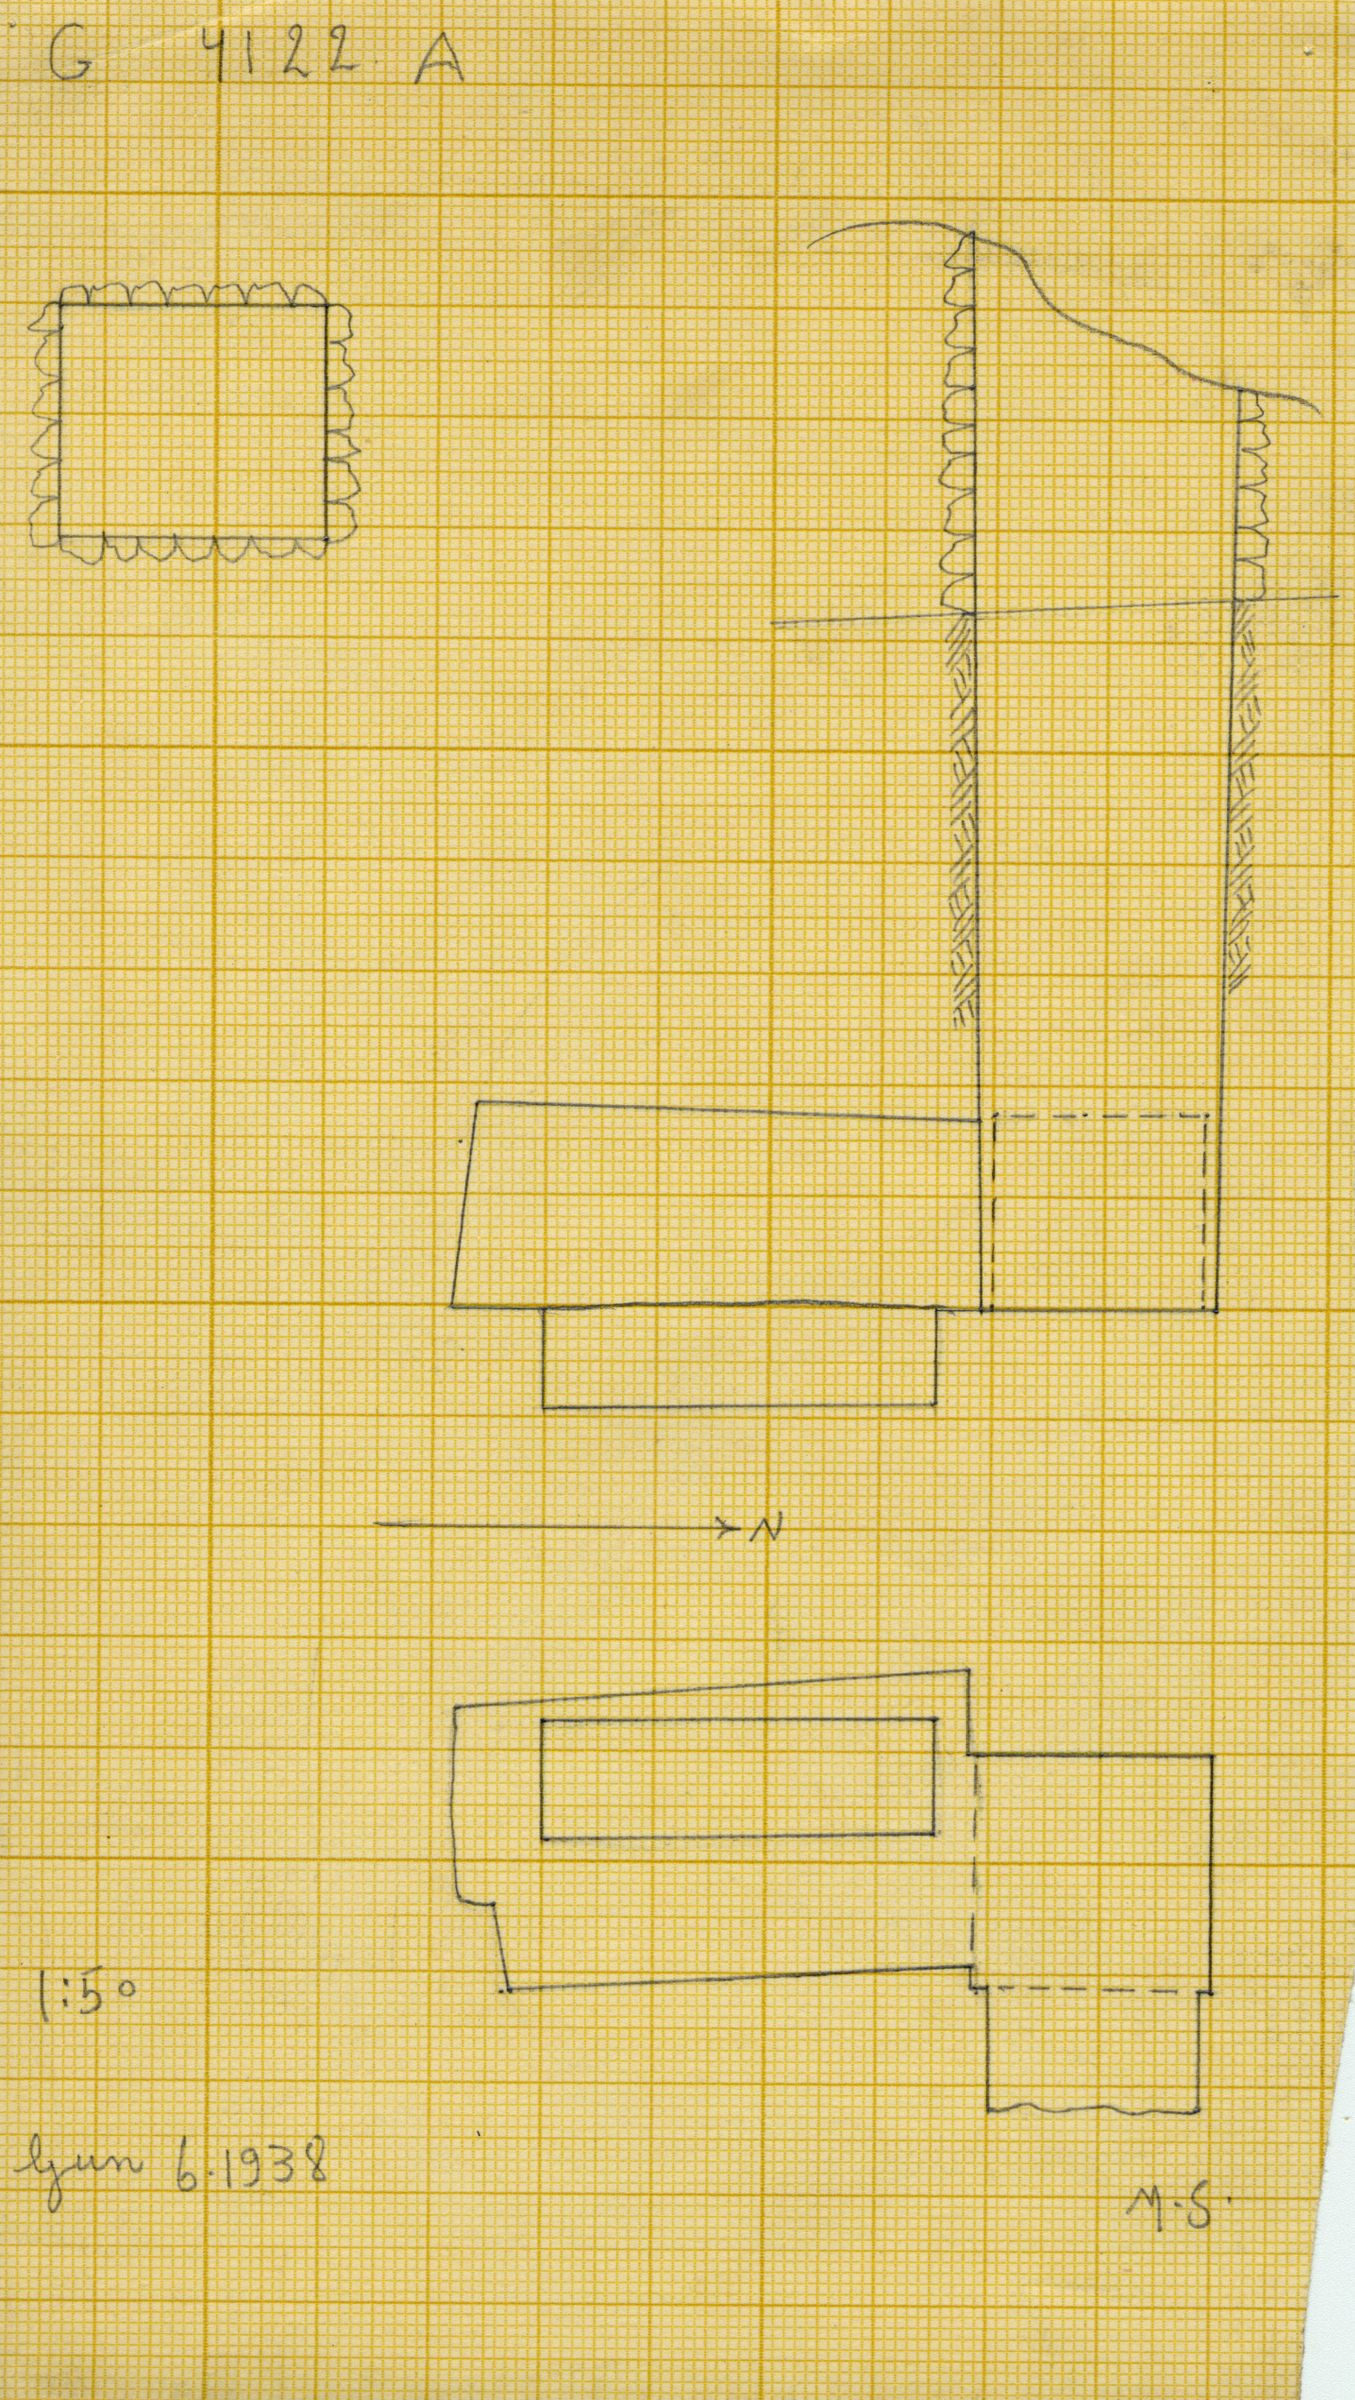 Maps and plans: G 4122, Shaft A